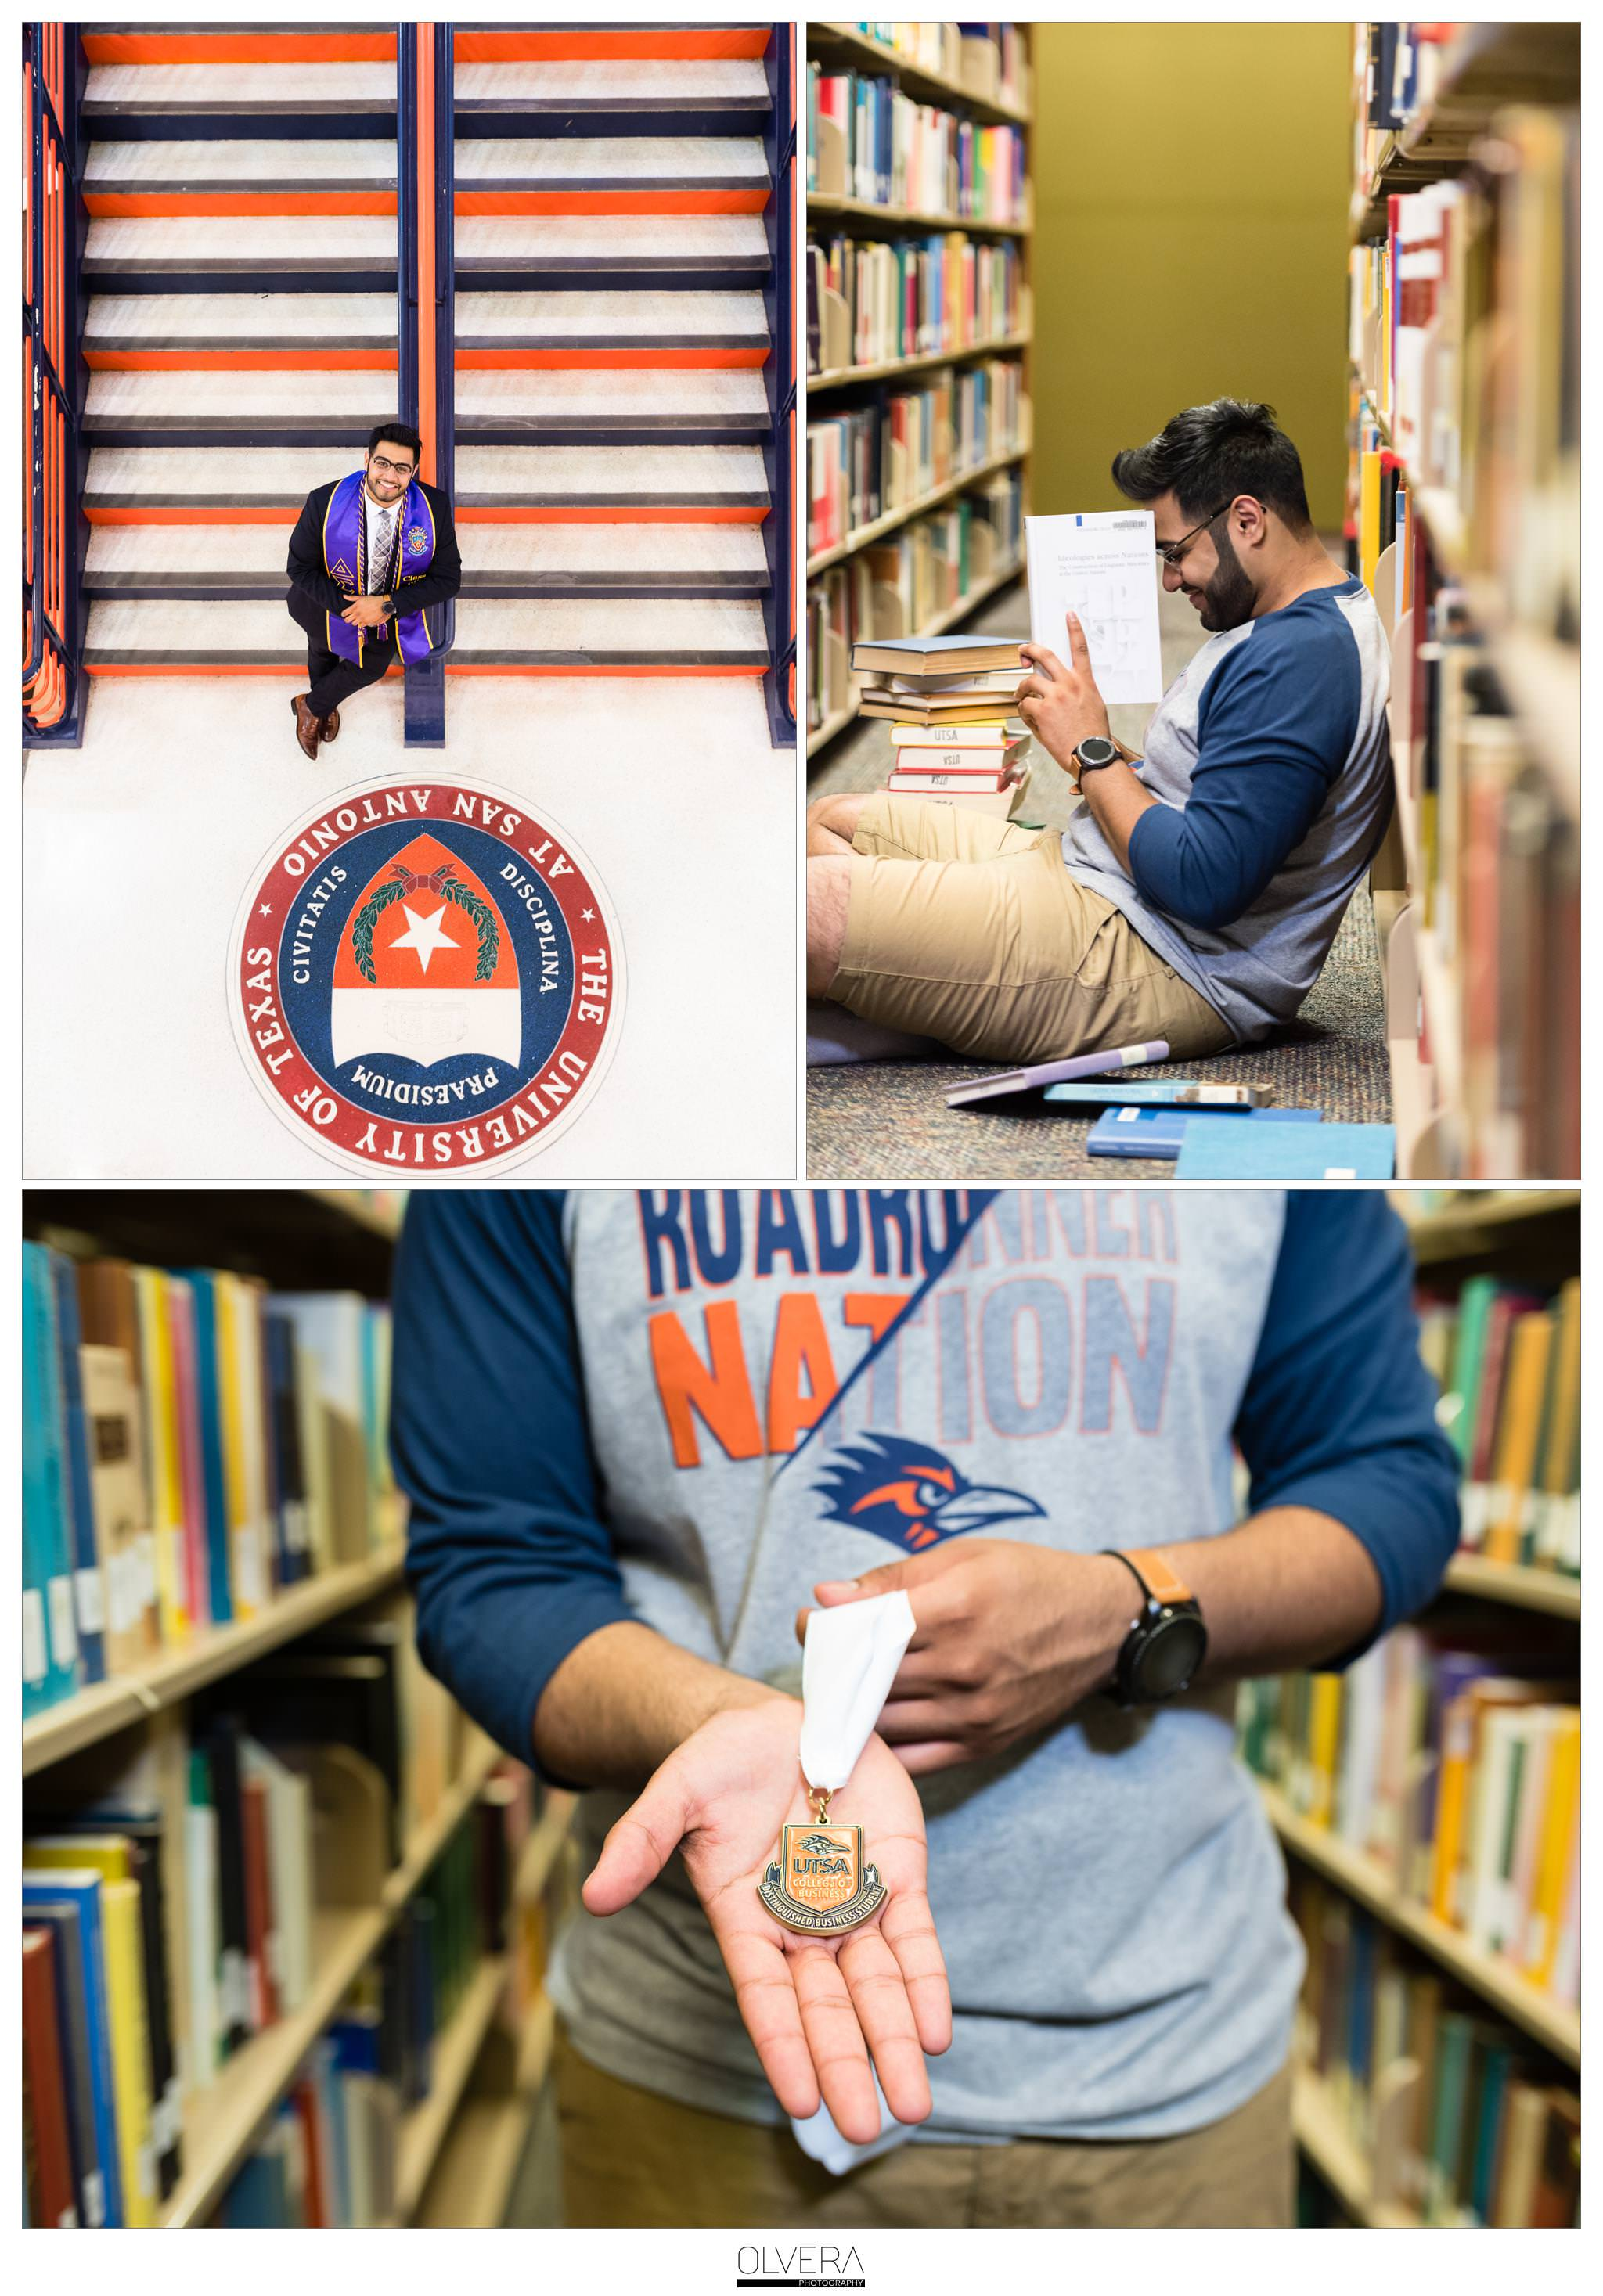 UTSA-Senior-Graduation- Portraits_San Antonio-TX 3